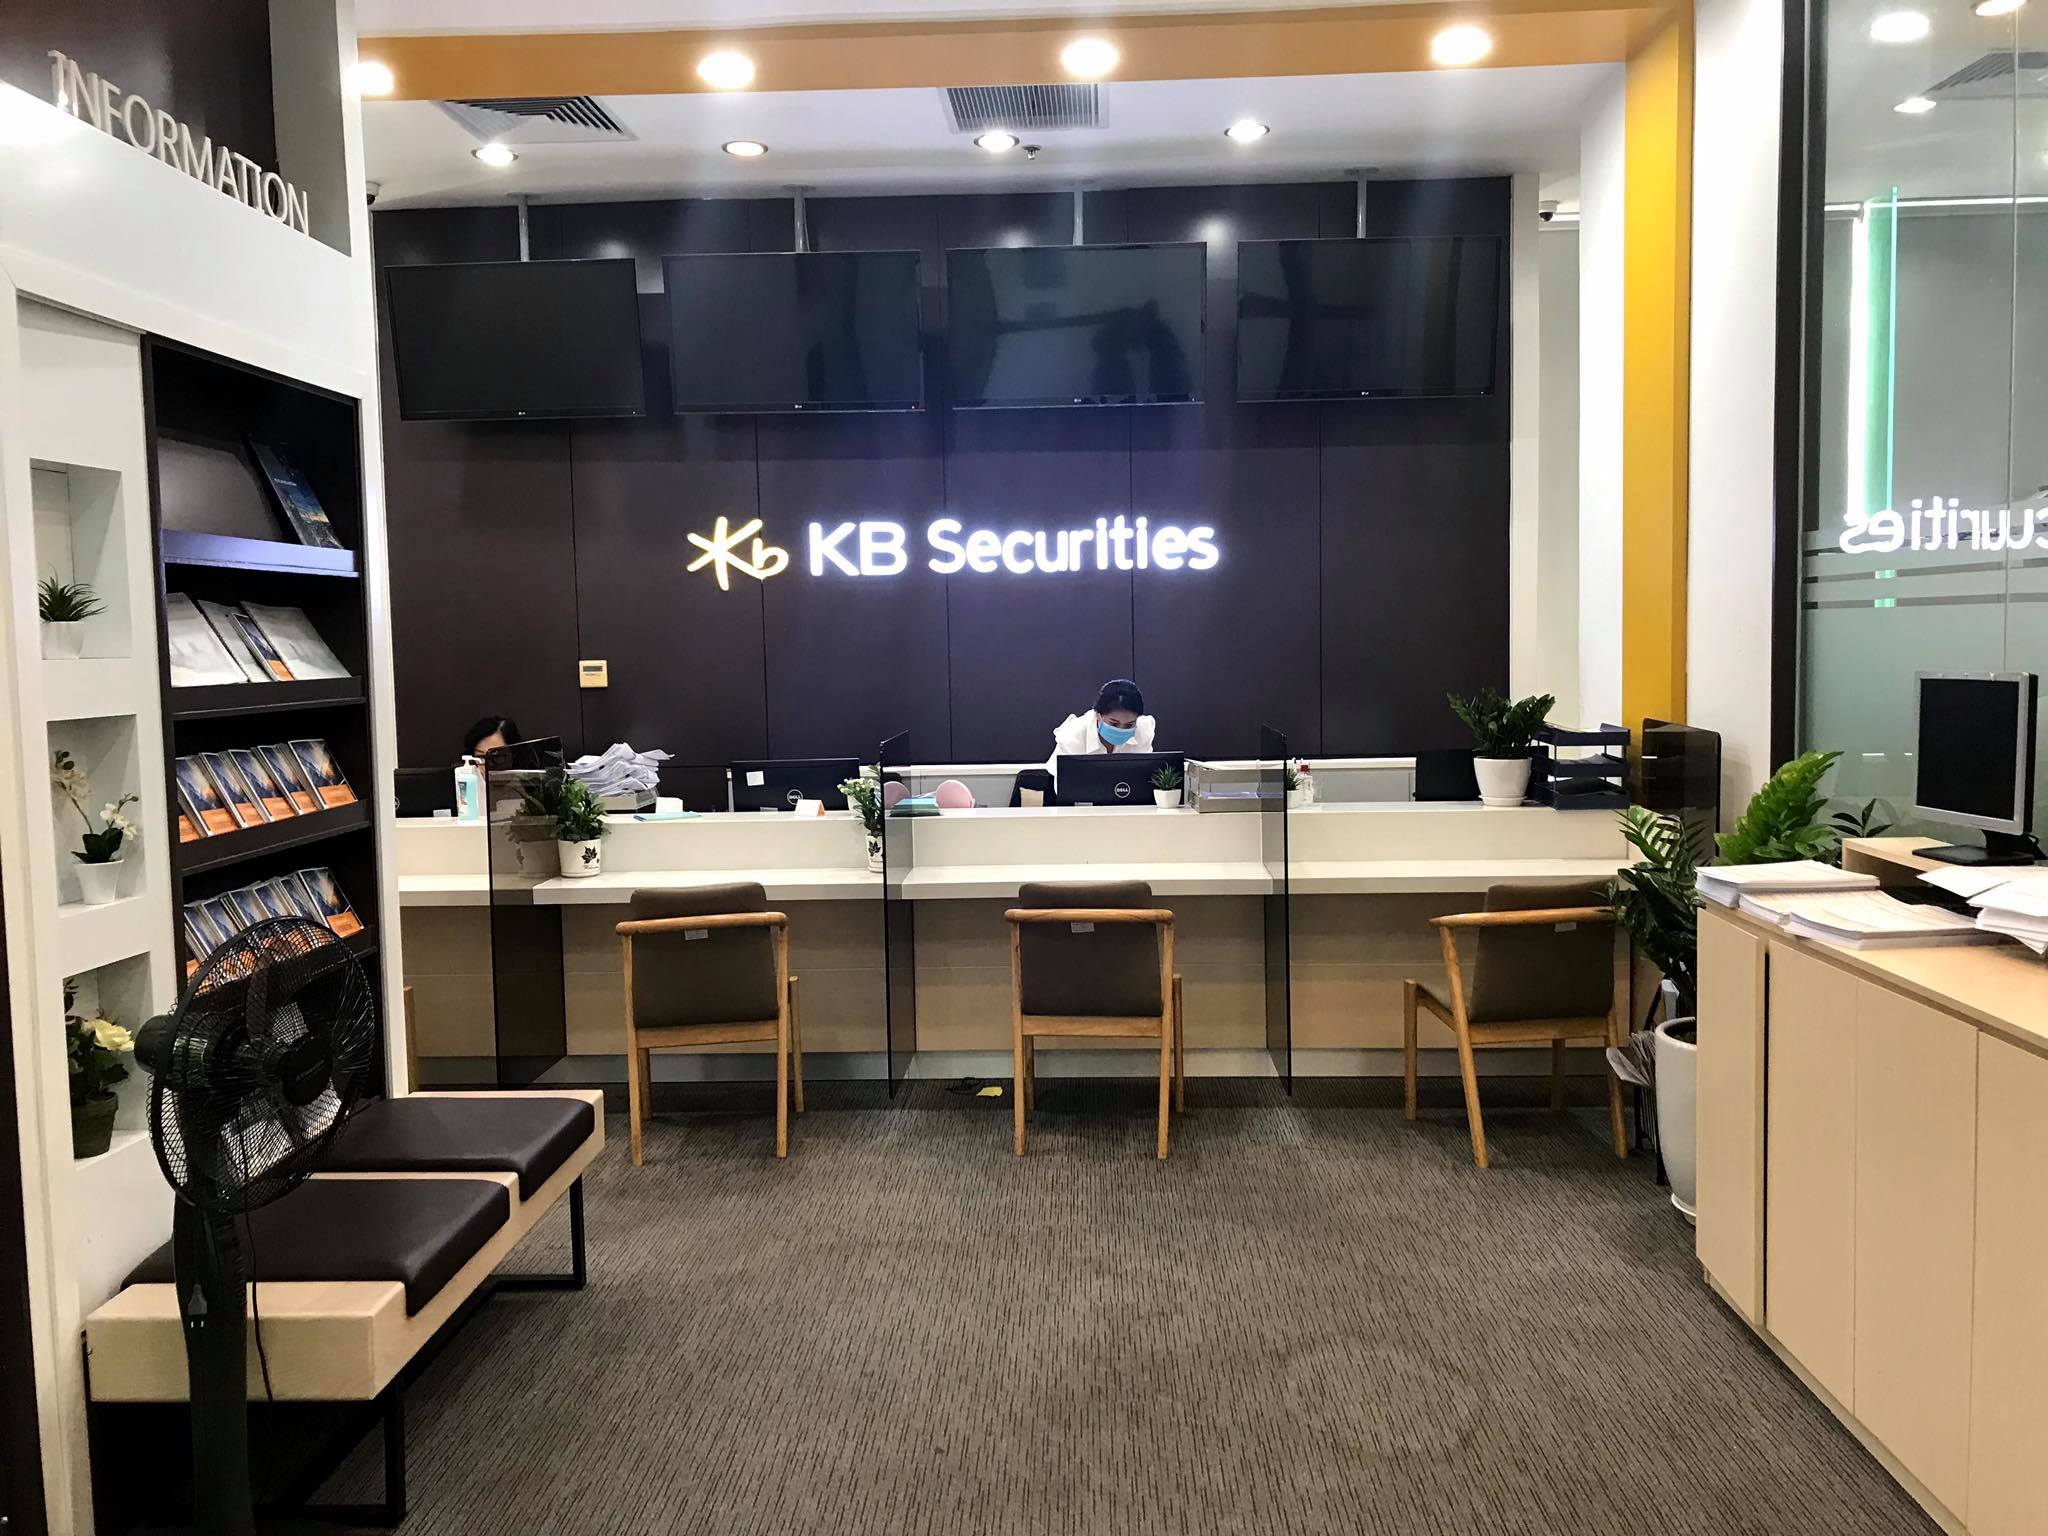 KBSV announces the temporarily stop serving direct customers at all branches in order to prevent the Covid-19 epidemic